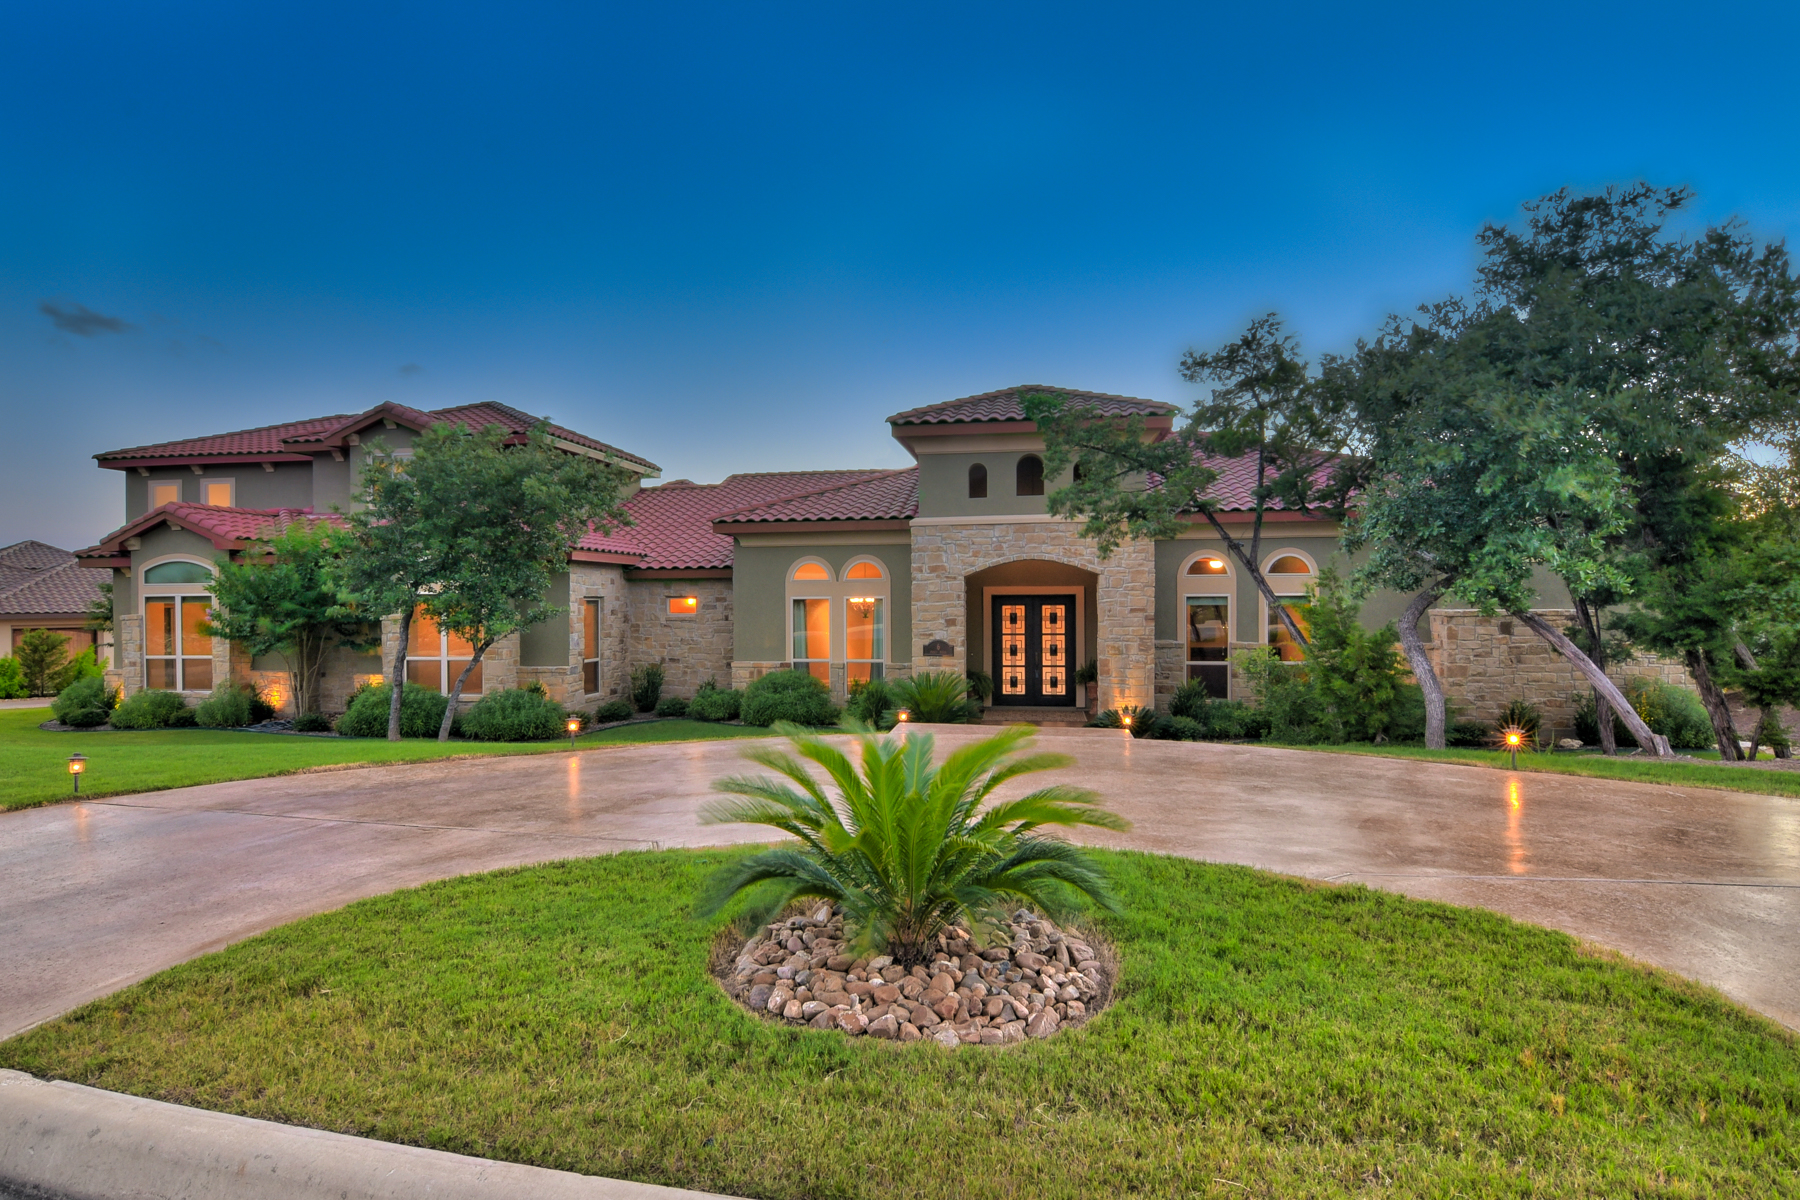 Casa Unifamiliar por un Venta en Gorgeous Estate in The Dominion 6 Paseo Rioja The Dominion, San Antonio, Texas, 78257 Estados Unidos